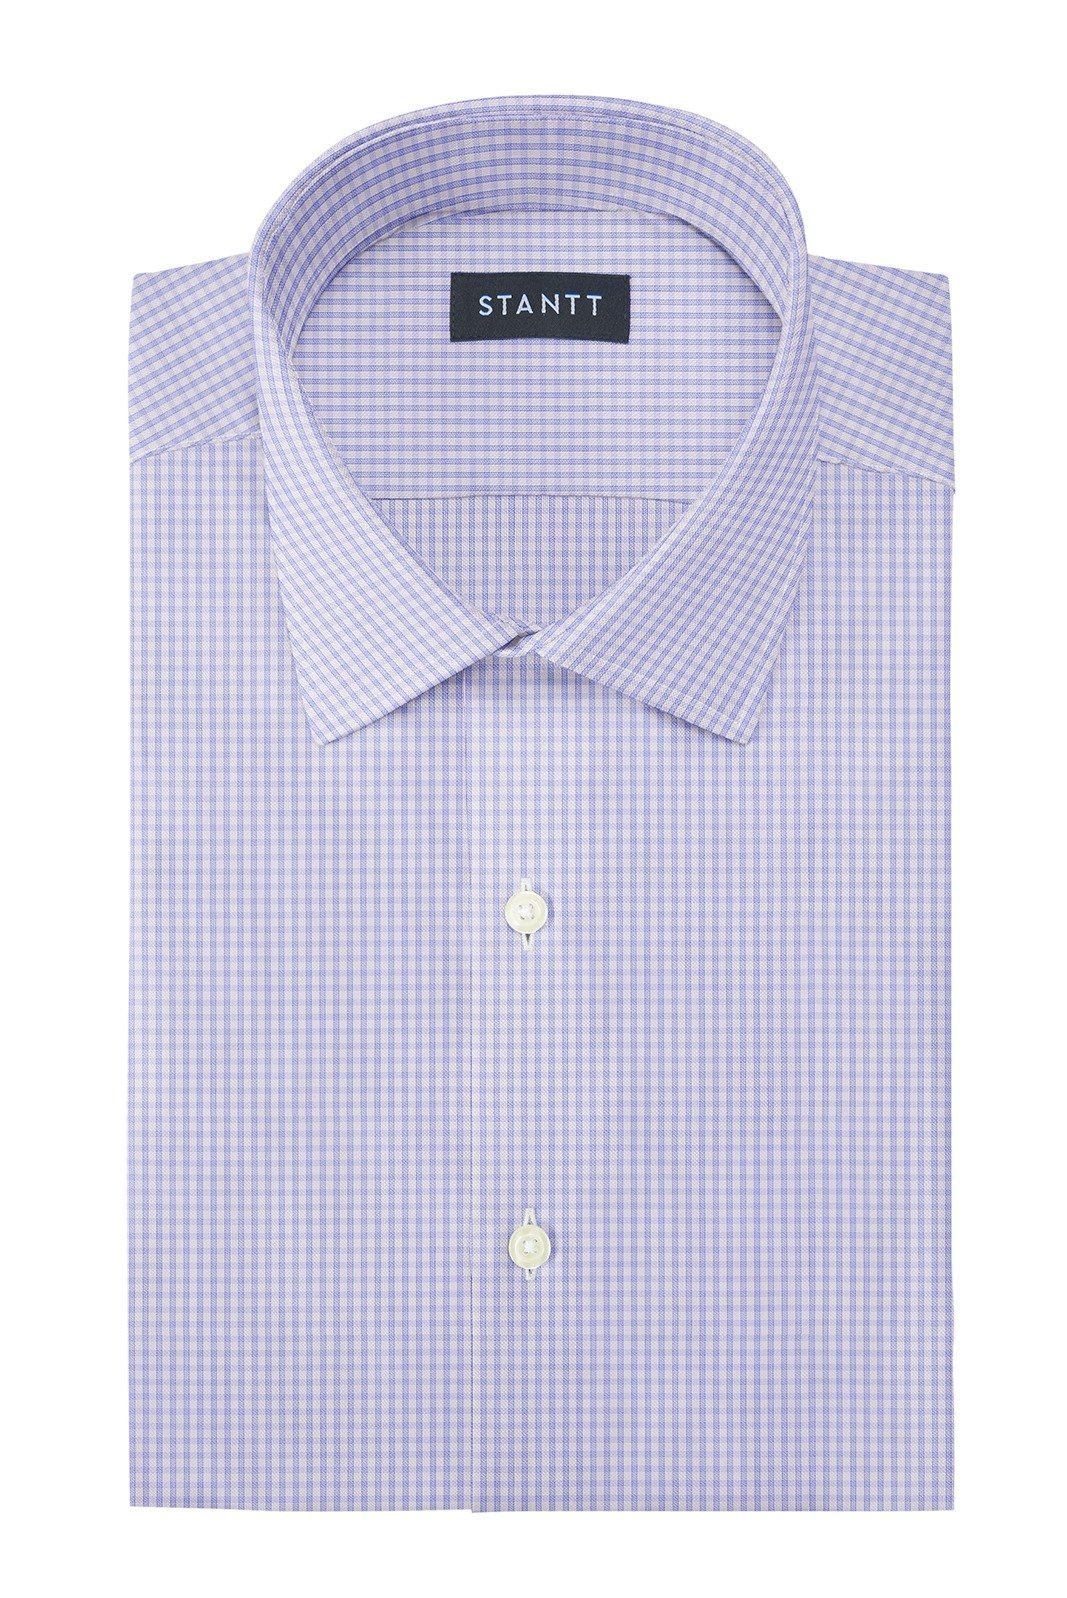 Wrinkle-Resistant Sky Blue Grid Check: Modified-Spread Collar, French Cuff